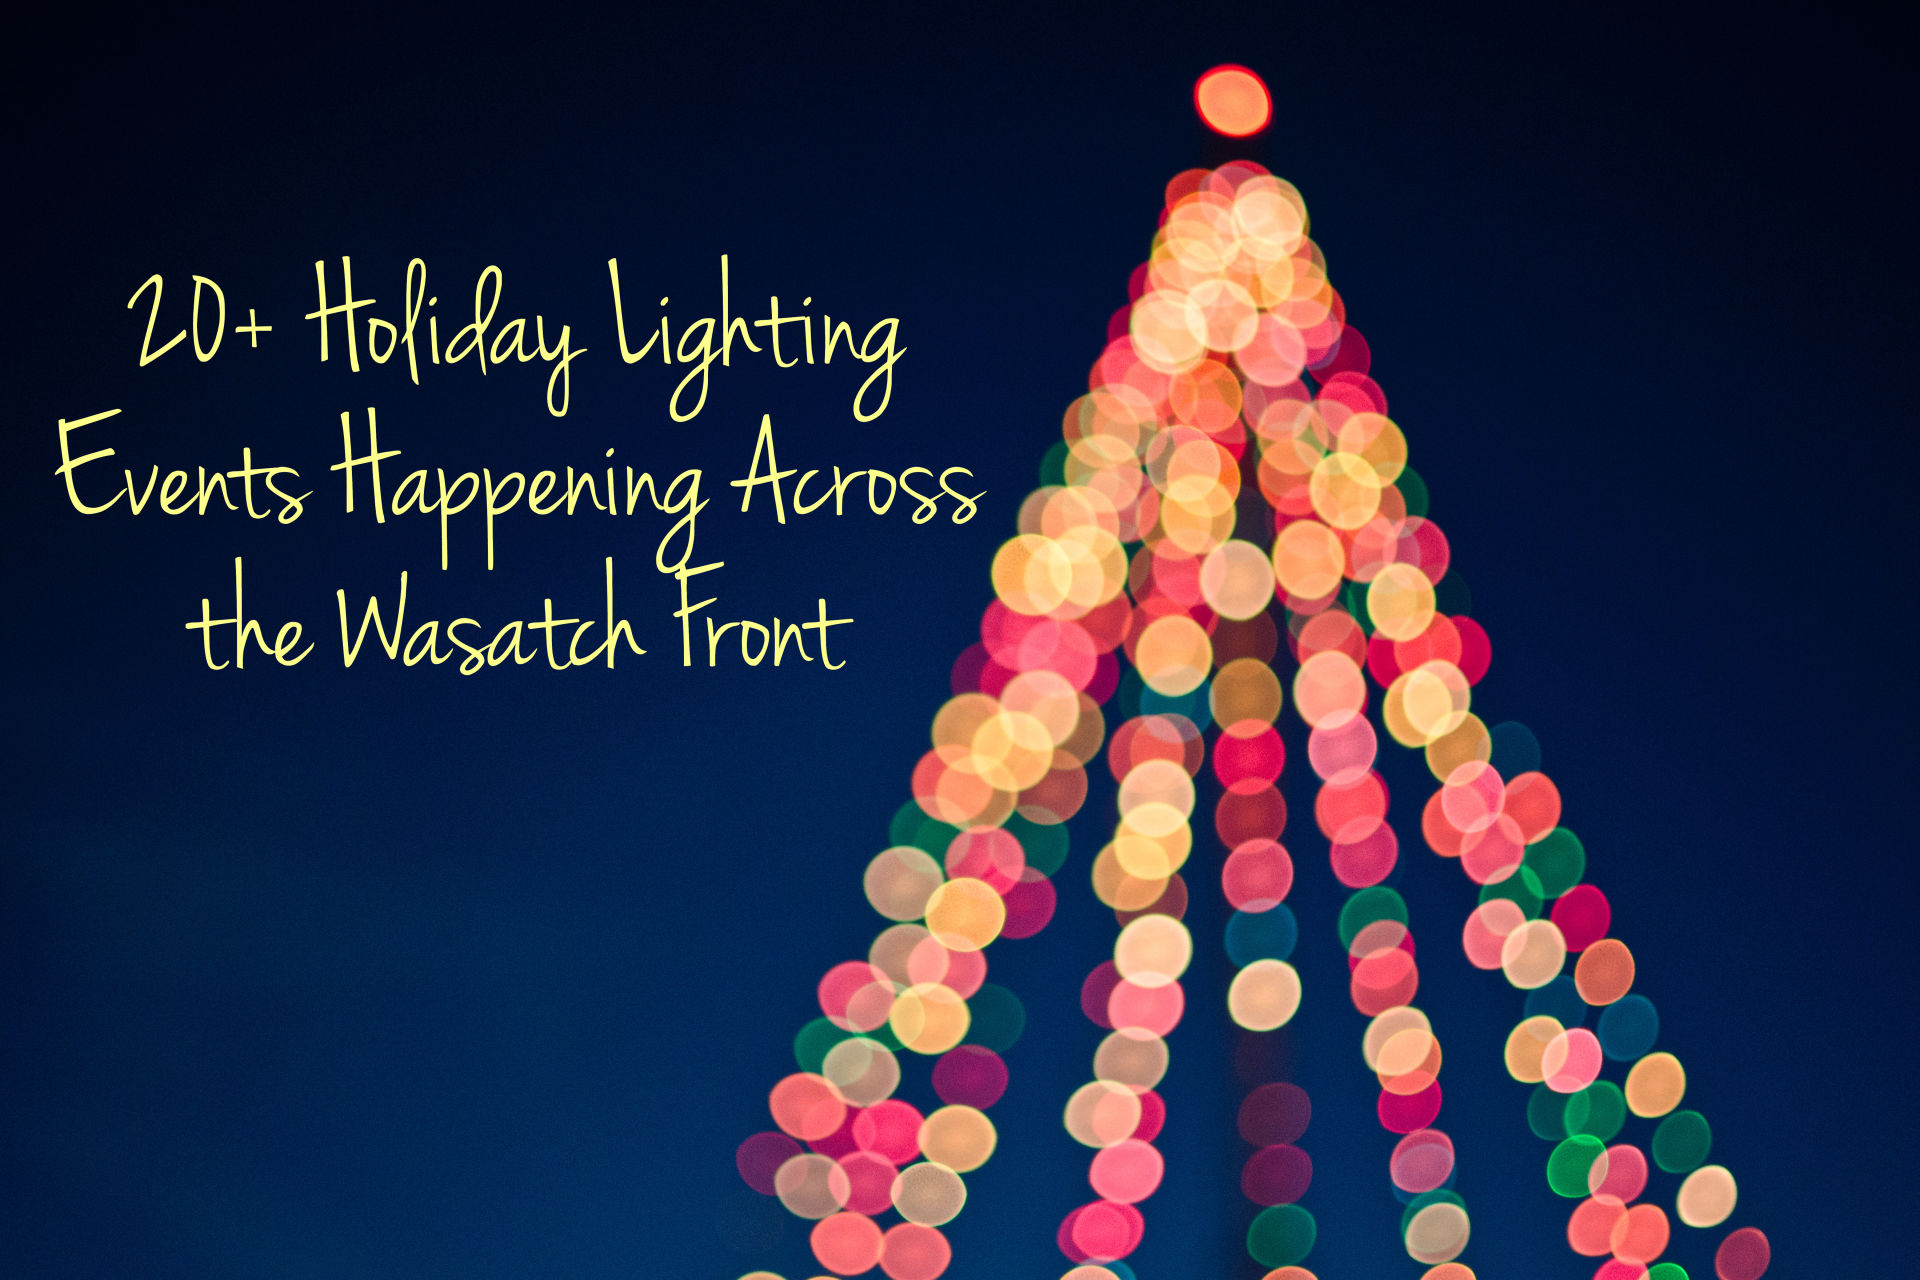 20+ Holiday Lighting Events Happening across the Wasatch Front this December